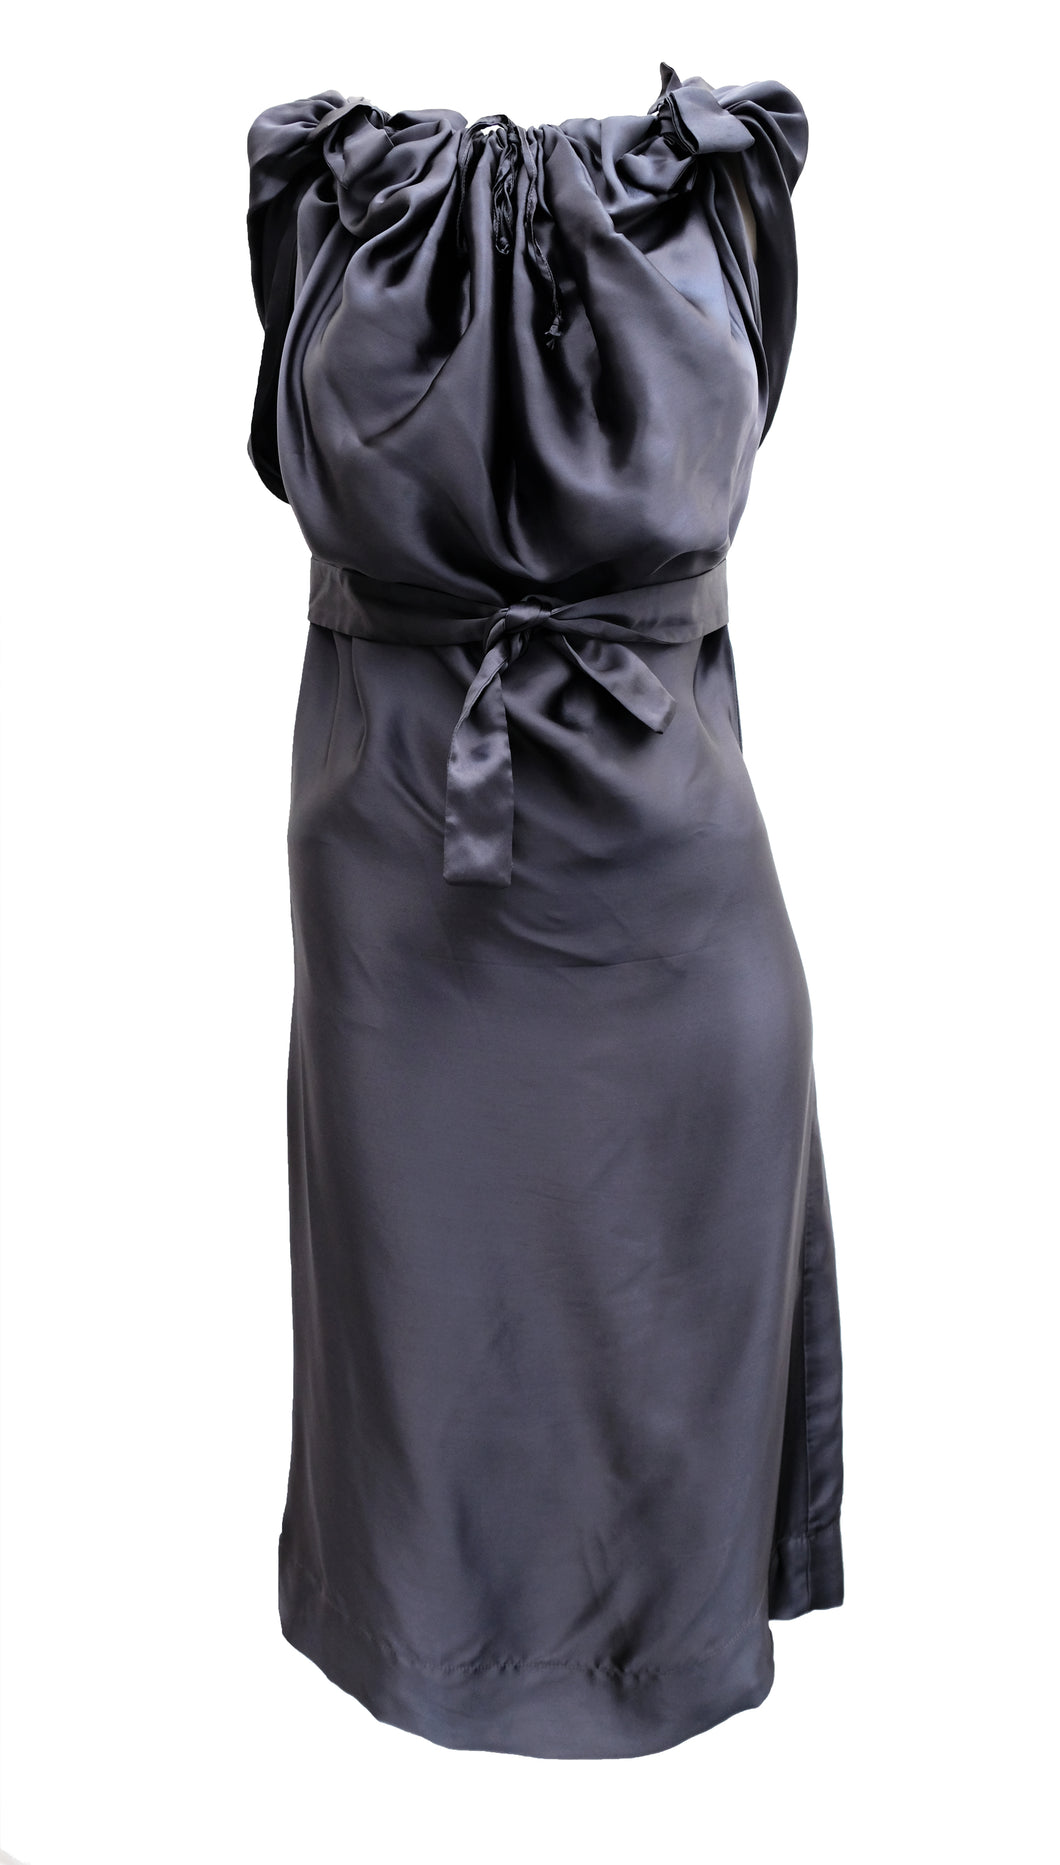 Vivienne Westwood Satin Evening Dress UK8-10